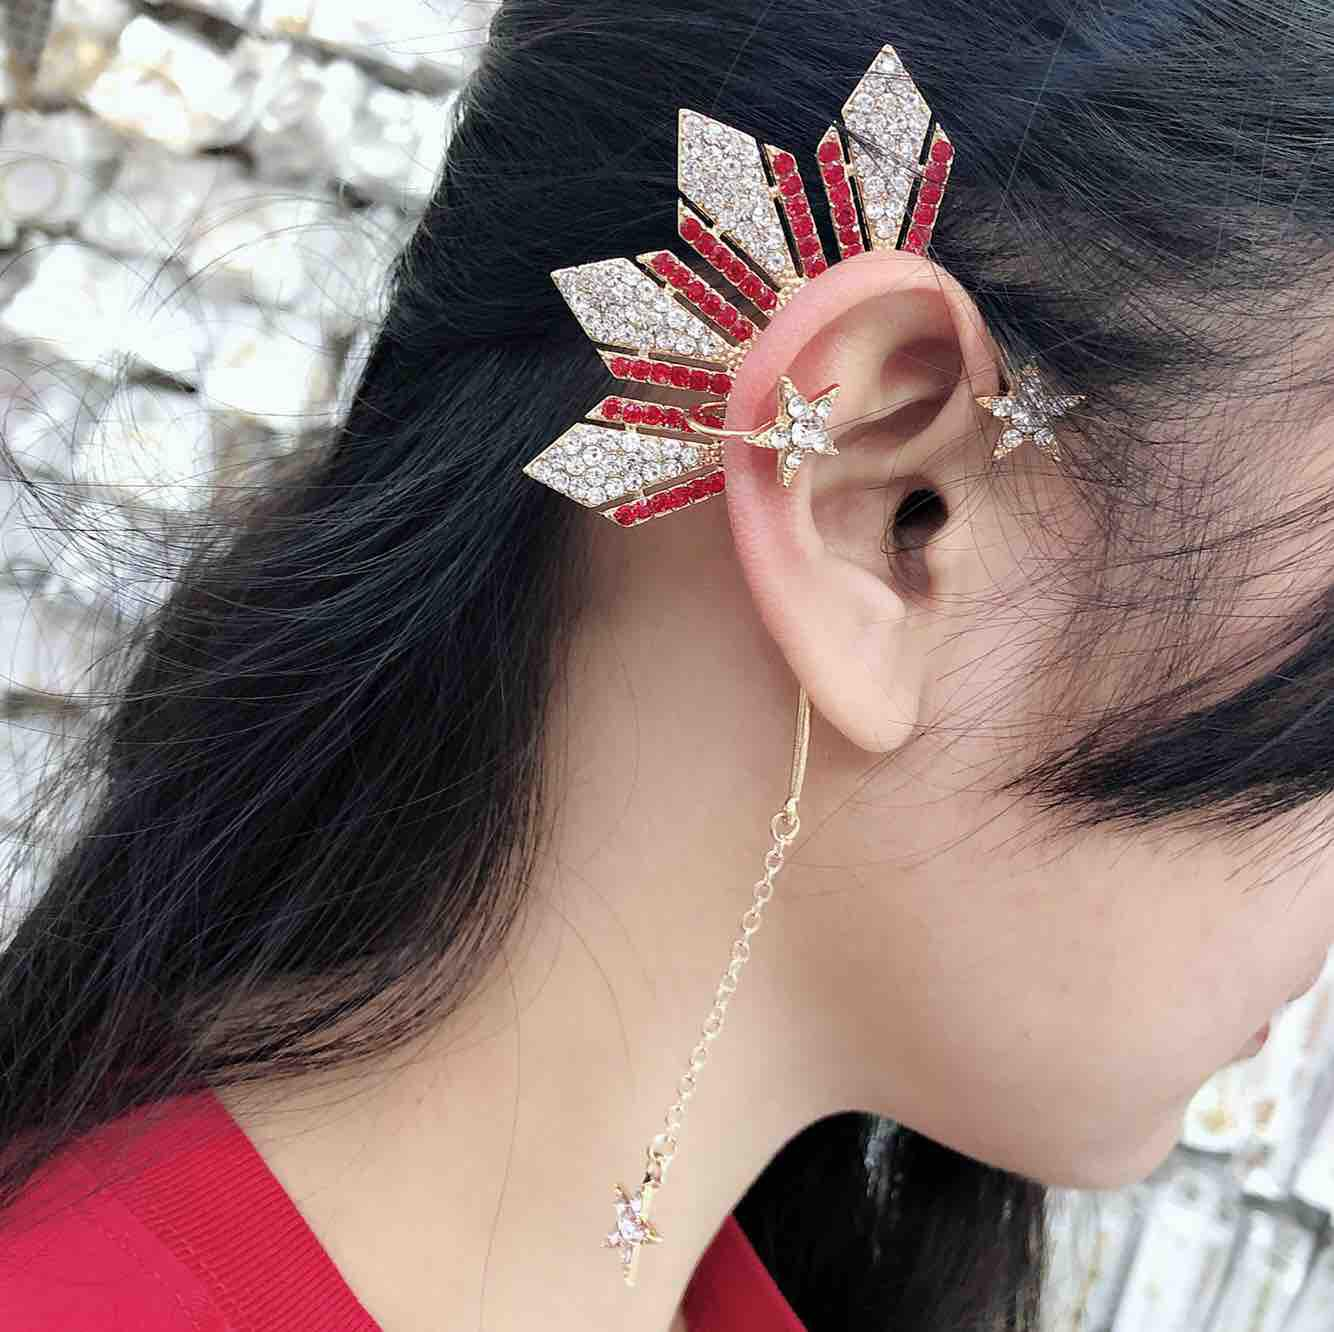 Ear cuff new style with stone